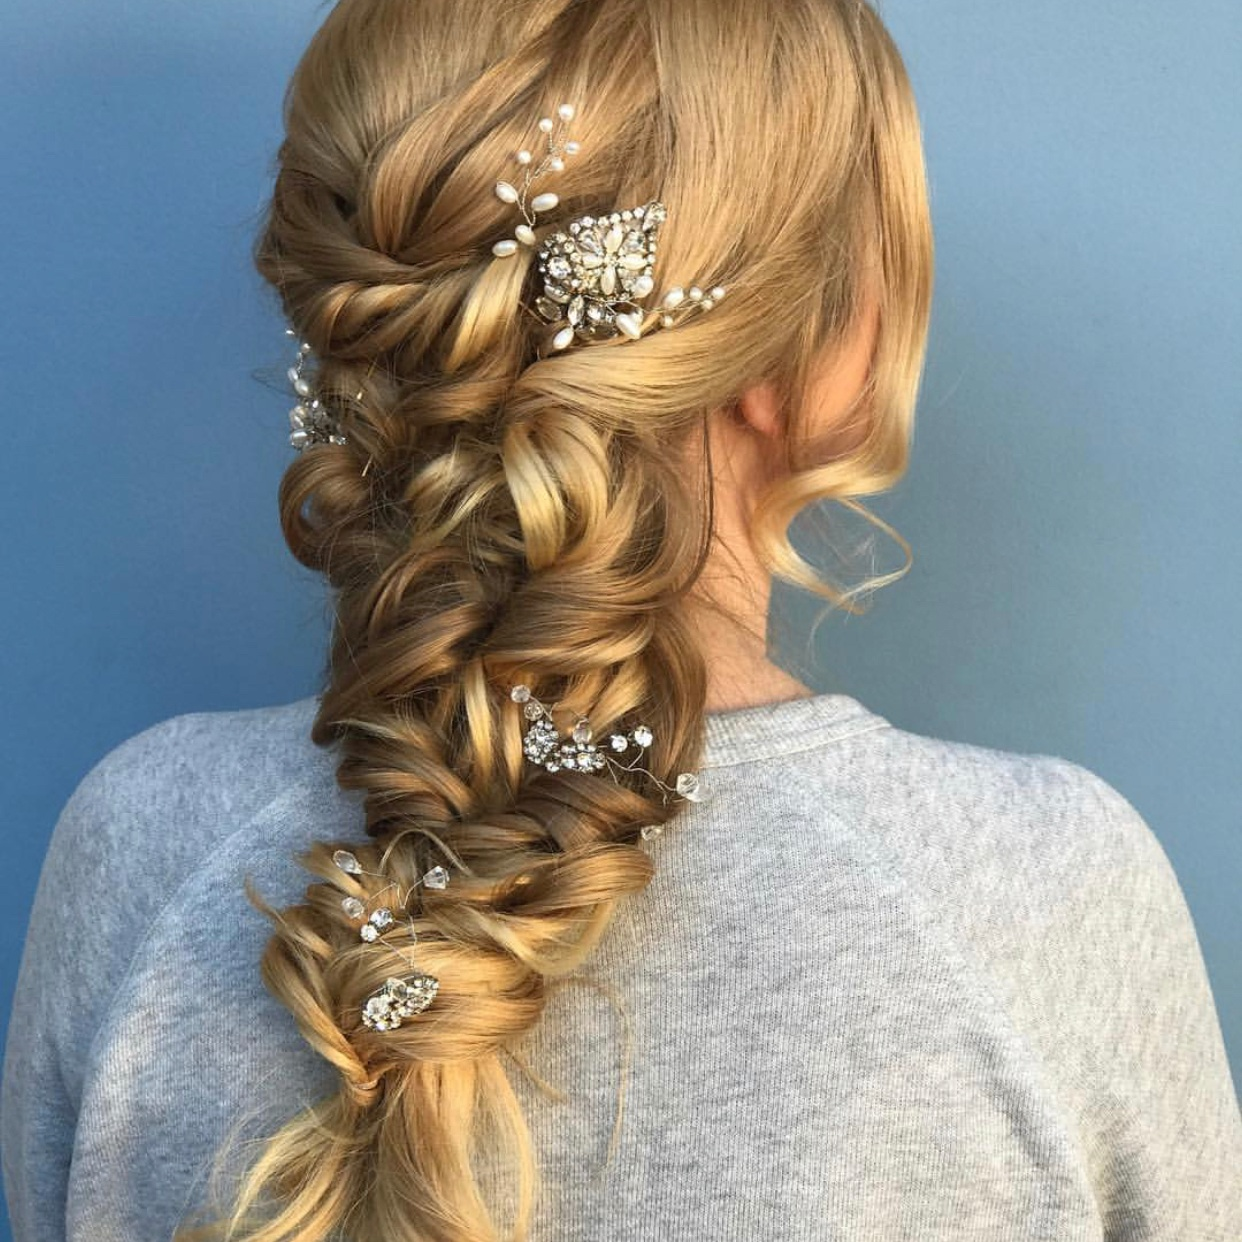 hair styling -